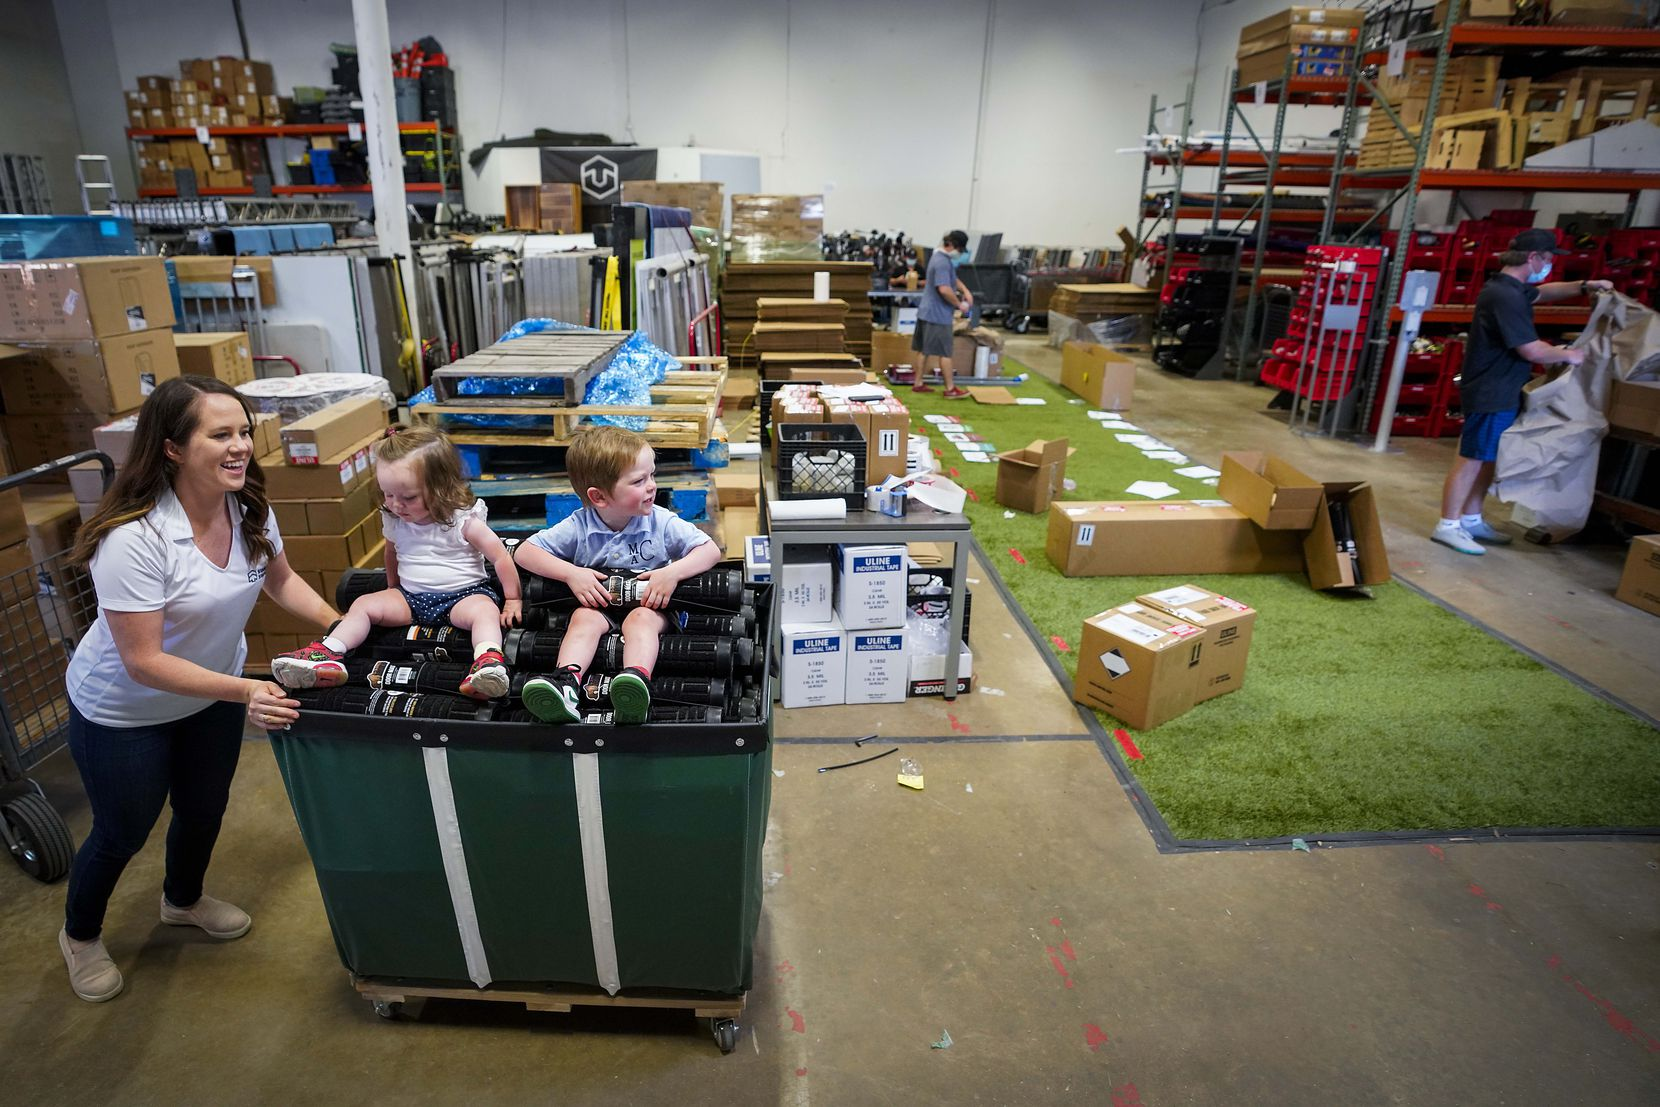 Stand Up Stations cofounder Kelsey Carroll entertains her 1-year-old daughter Ava and 2-year-old son Max as employees package hand sanitizing stations for shipping at the company's warehouse in Irving.